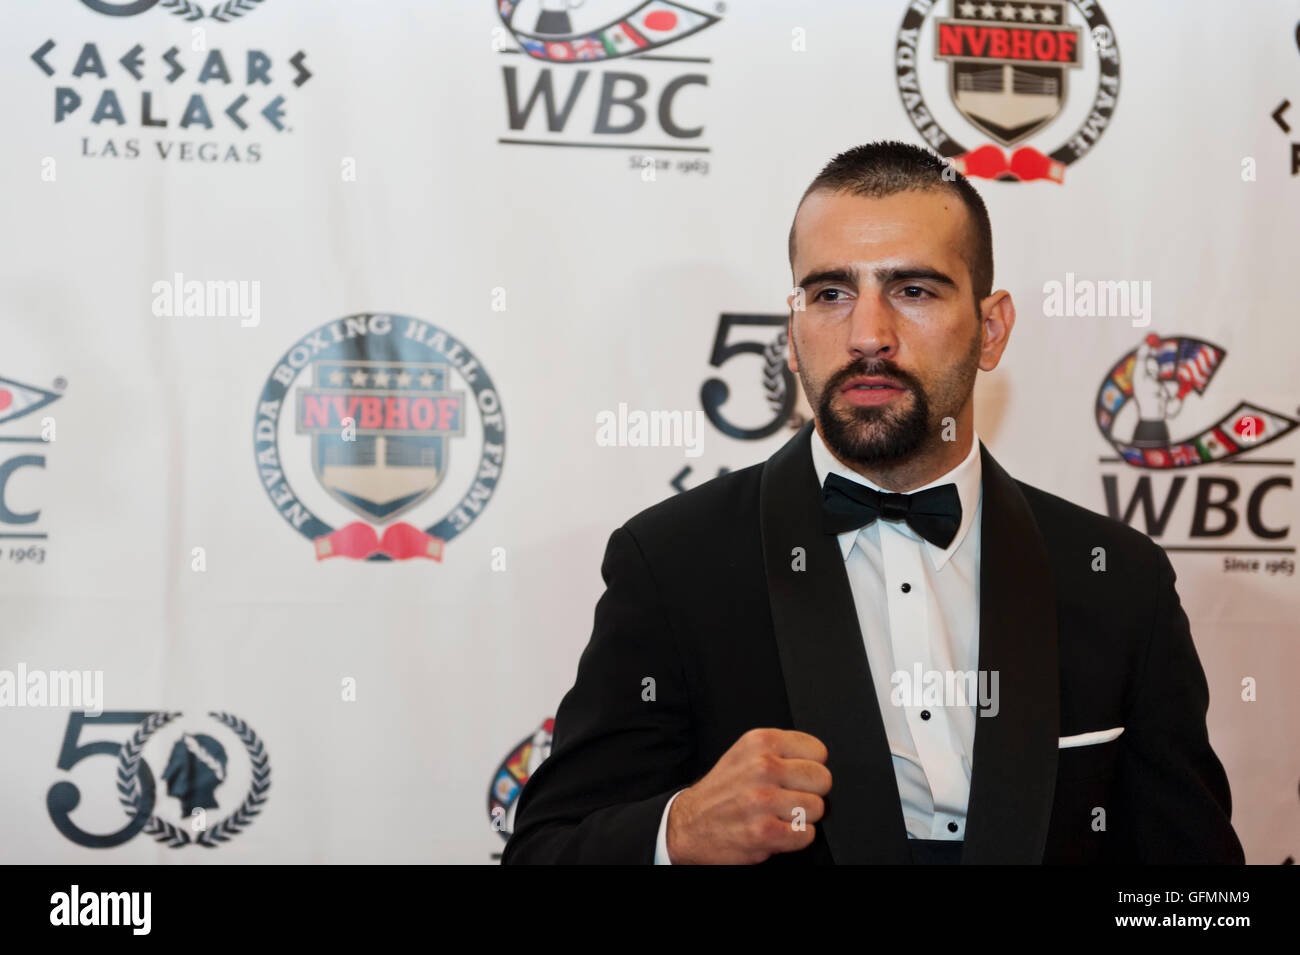 Las Vegas, Nevada, USA. 30th July, 2016. Milorad Zizic on the red carpet at the 4th Annual Nevada Boxing Hall of - Stock Image